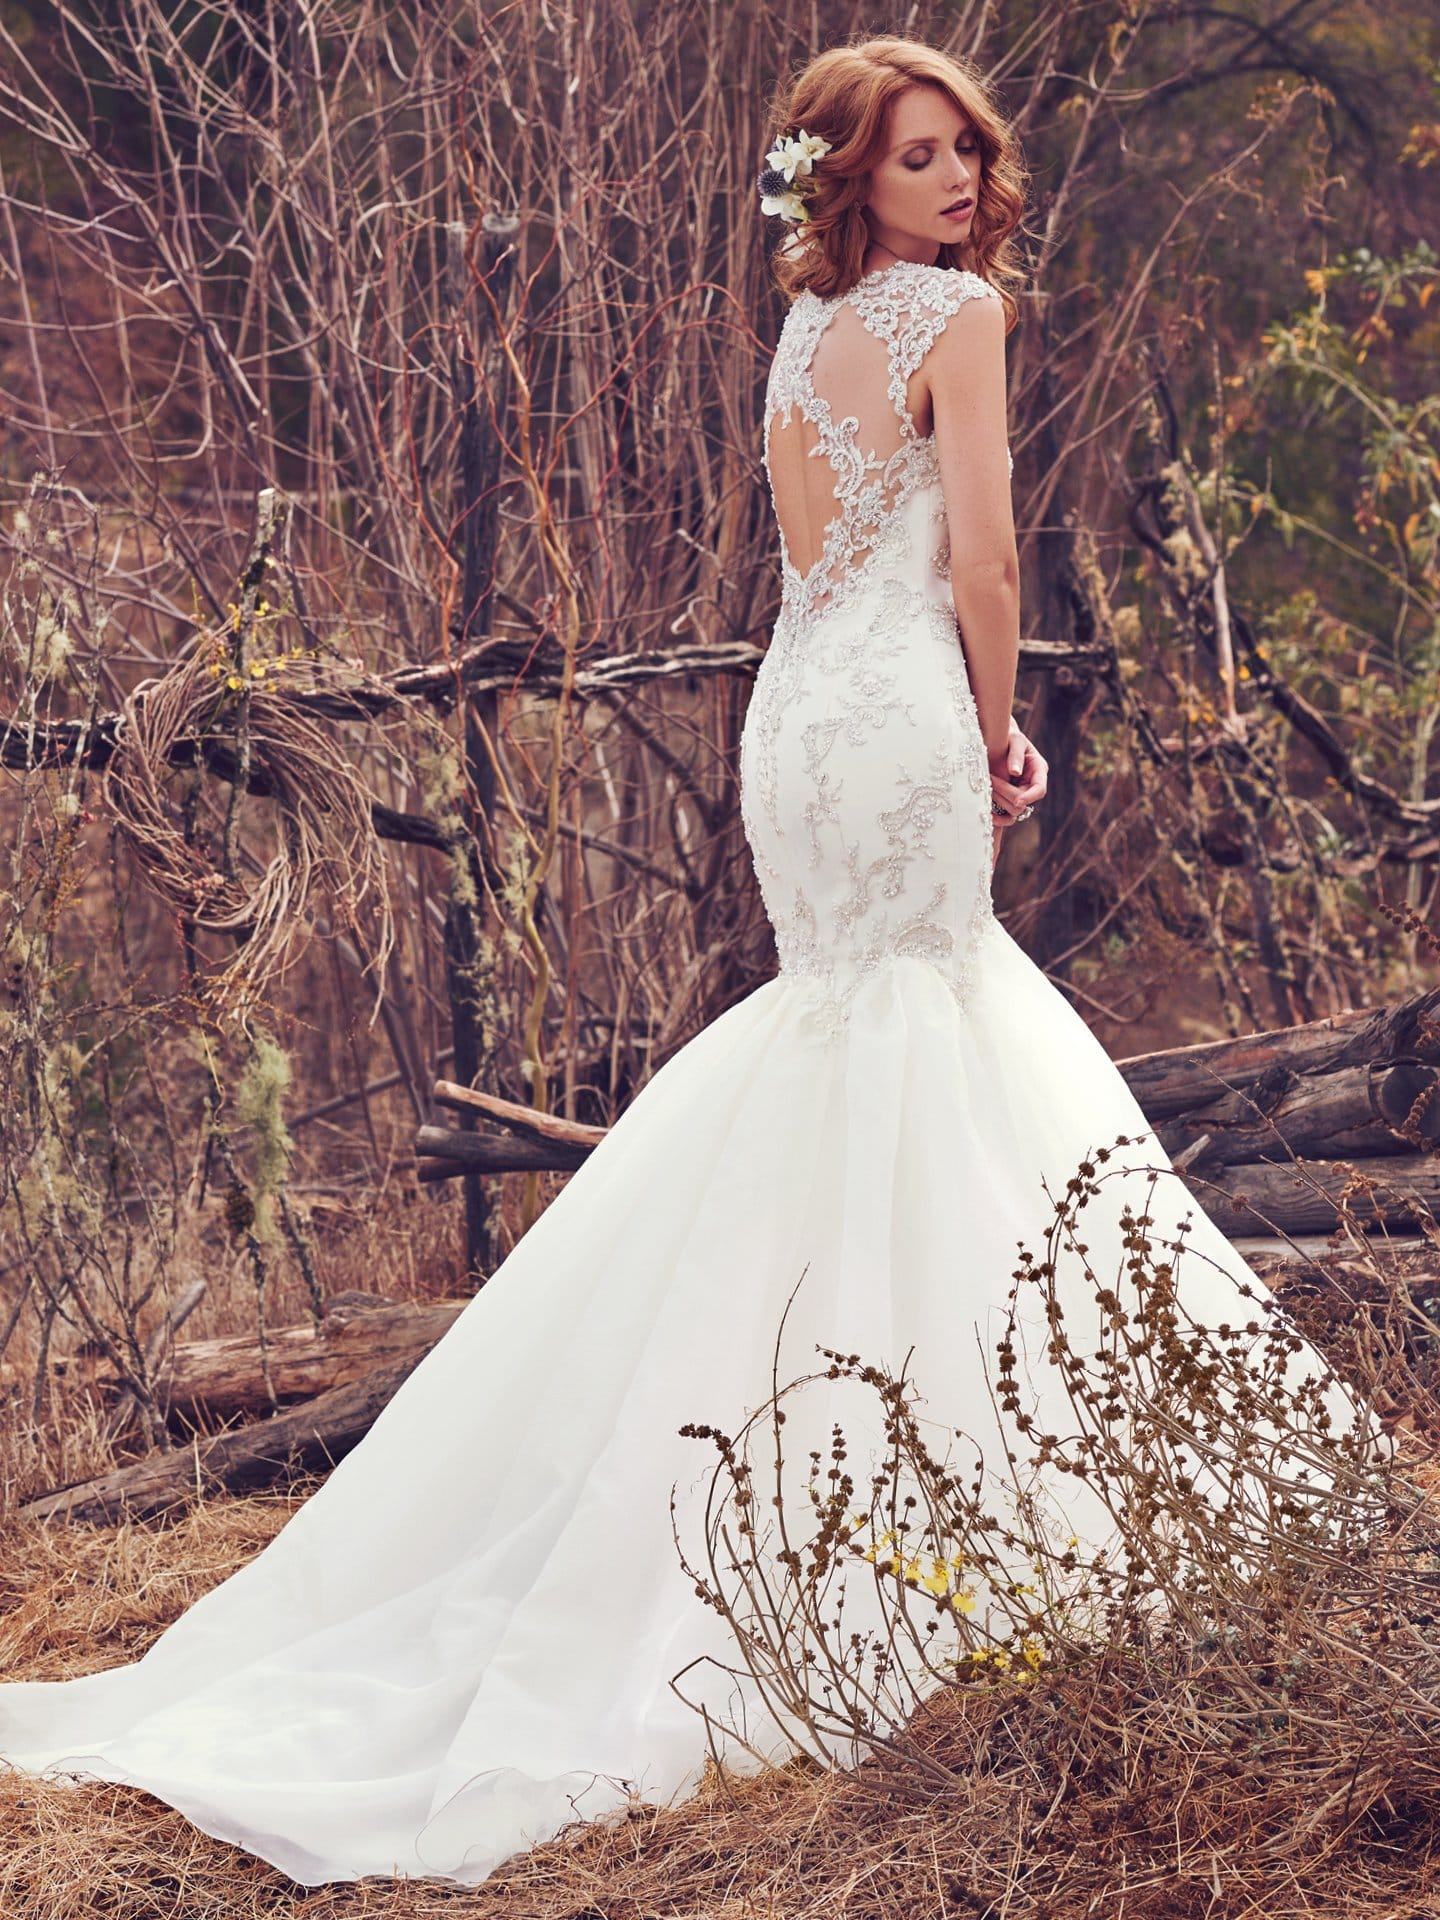 Beautiful statement-back wedding dresses from Maggie Sottero and Sottero and Midgley - Illusion cap-sleeves and an illusion keyhole back accented with lace appliqués complete the soft glamour of this wedding dress. Payson by Maggie Sottero.